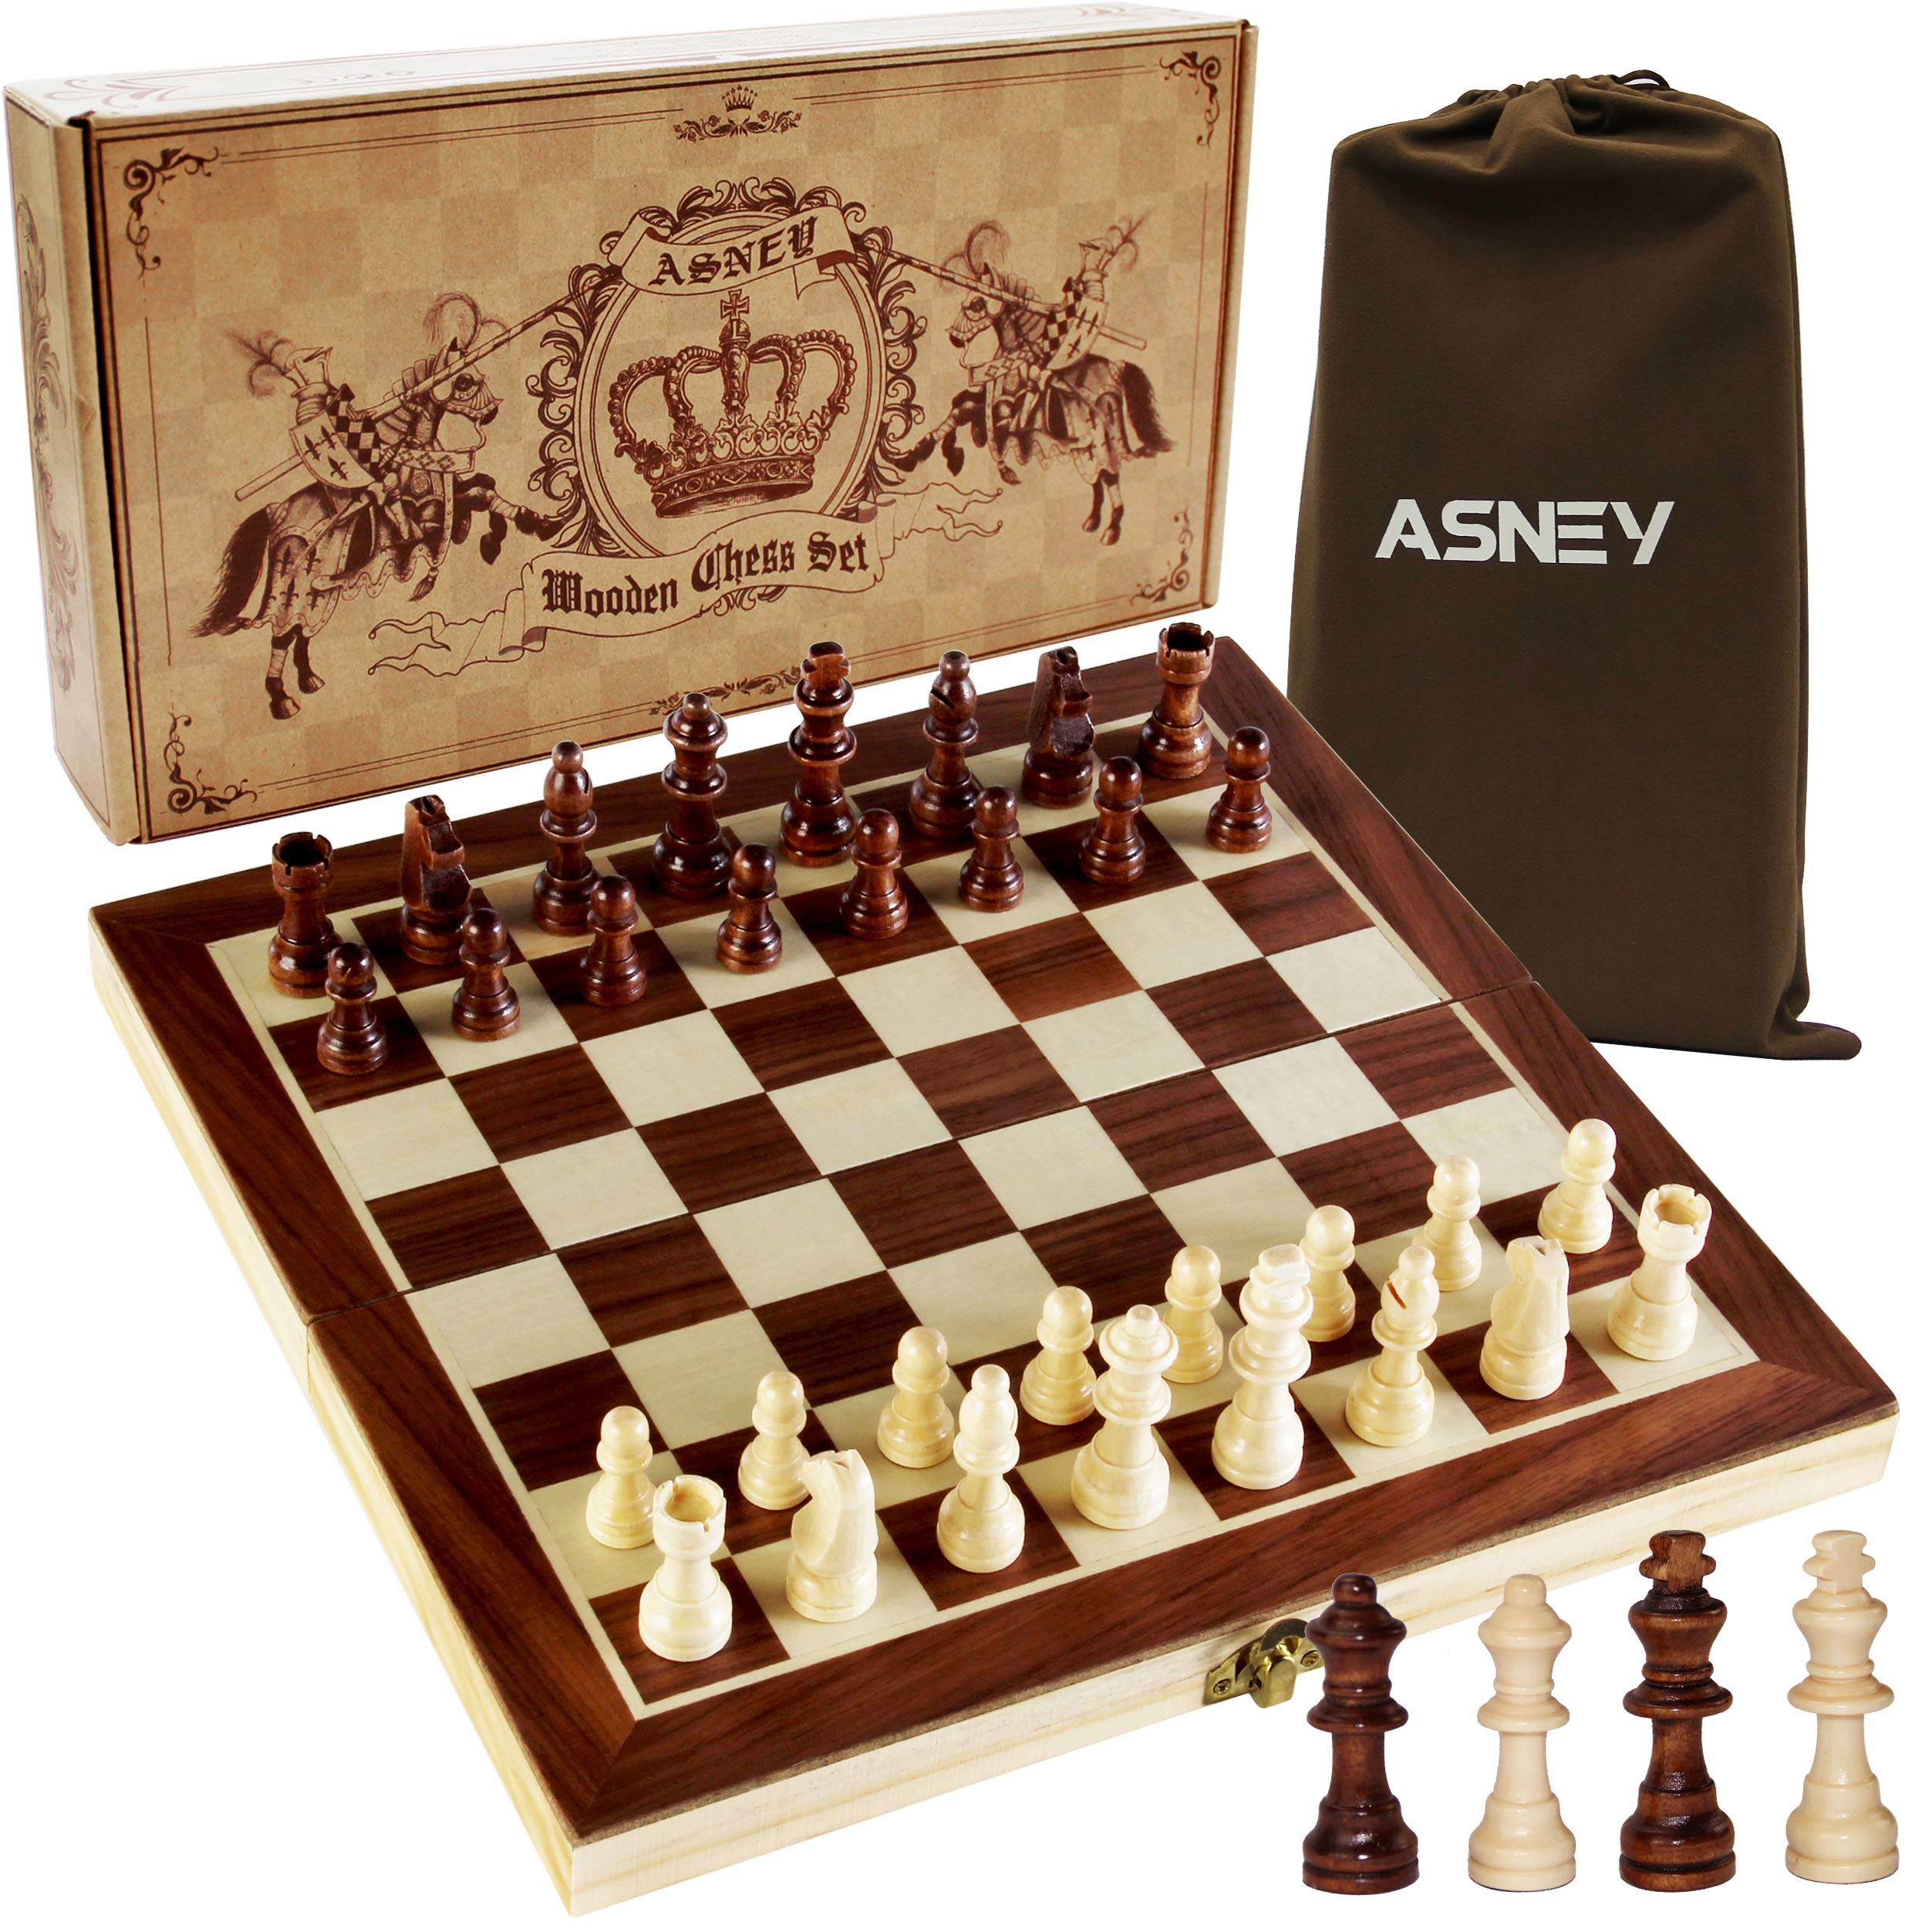 ASNEY Upgraded Magnetic Chess Set, 12'' x 12'' Folding Wooden Chess Set with Magnetic Crafted Chess Pieces, Chess Game Board Set with Storage Slots, Includes Extra Kings, Queens and Carry Bag by ASNEY